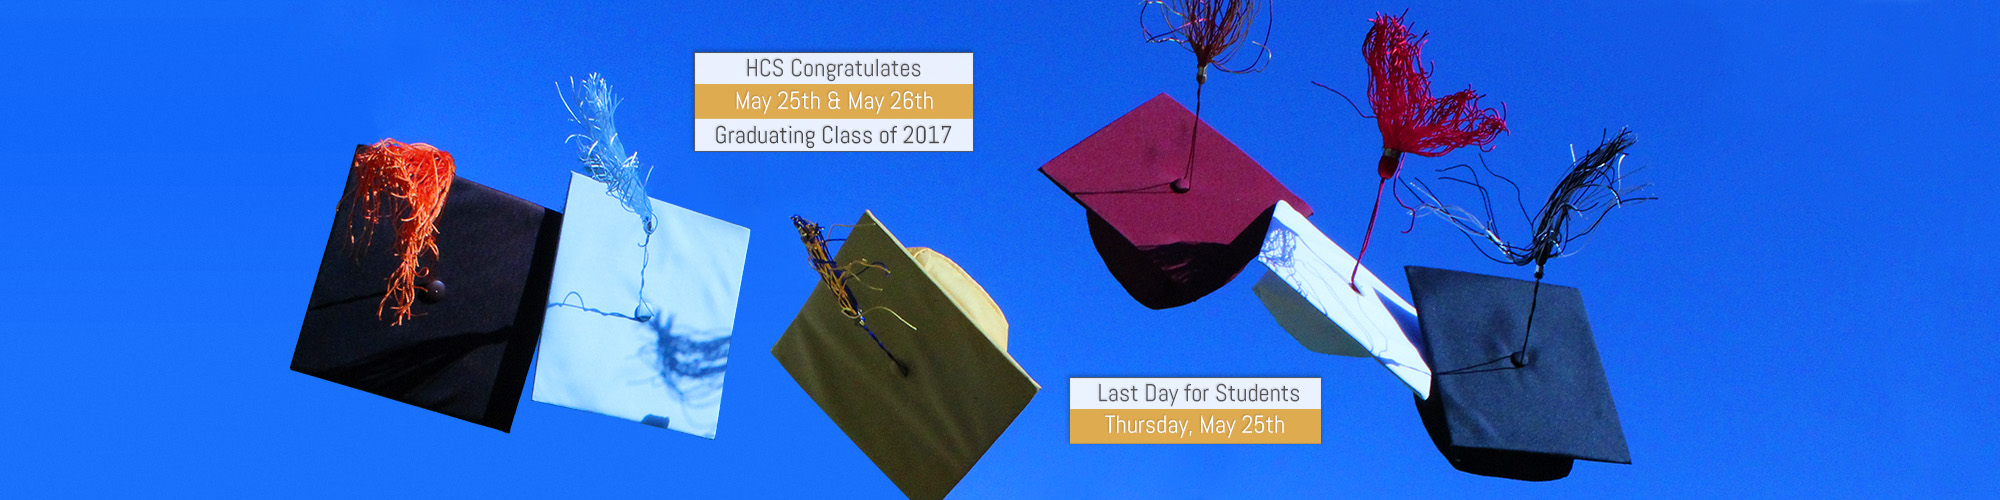 Graduation Caps In The Air; Congratulations Graduates, May 25th and 26th, Class of 2017; Last day for students, Thursday, May 25th